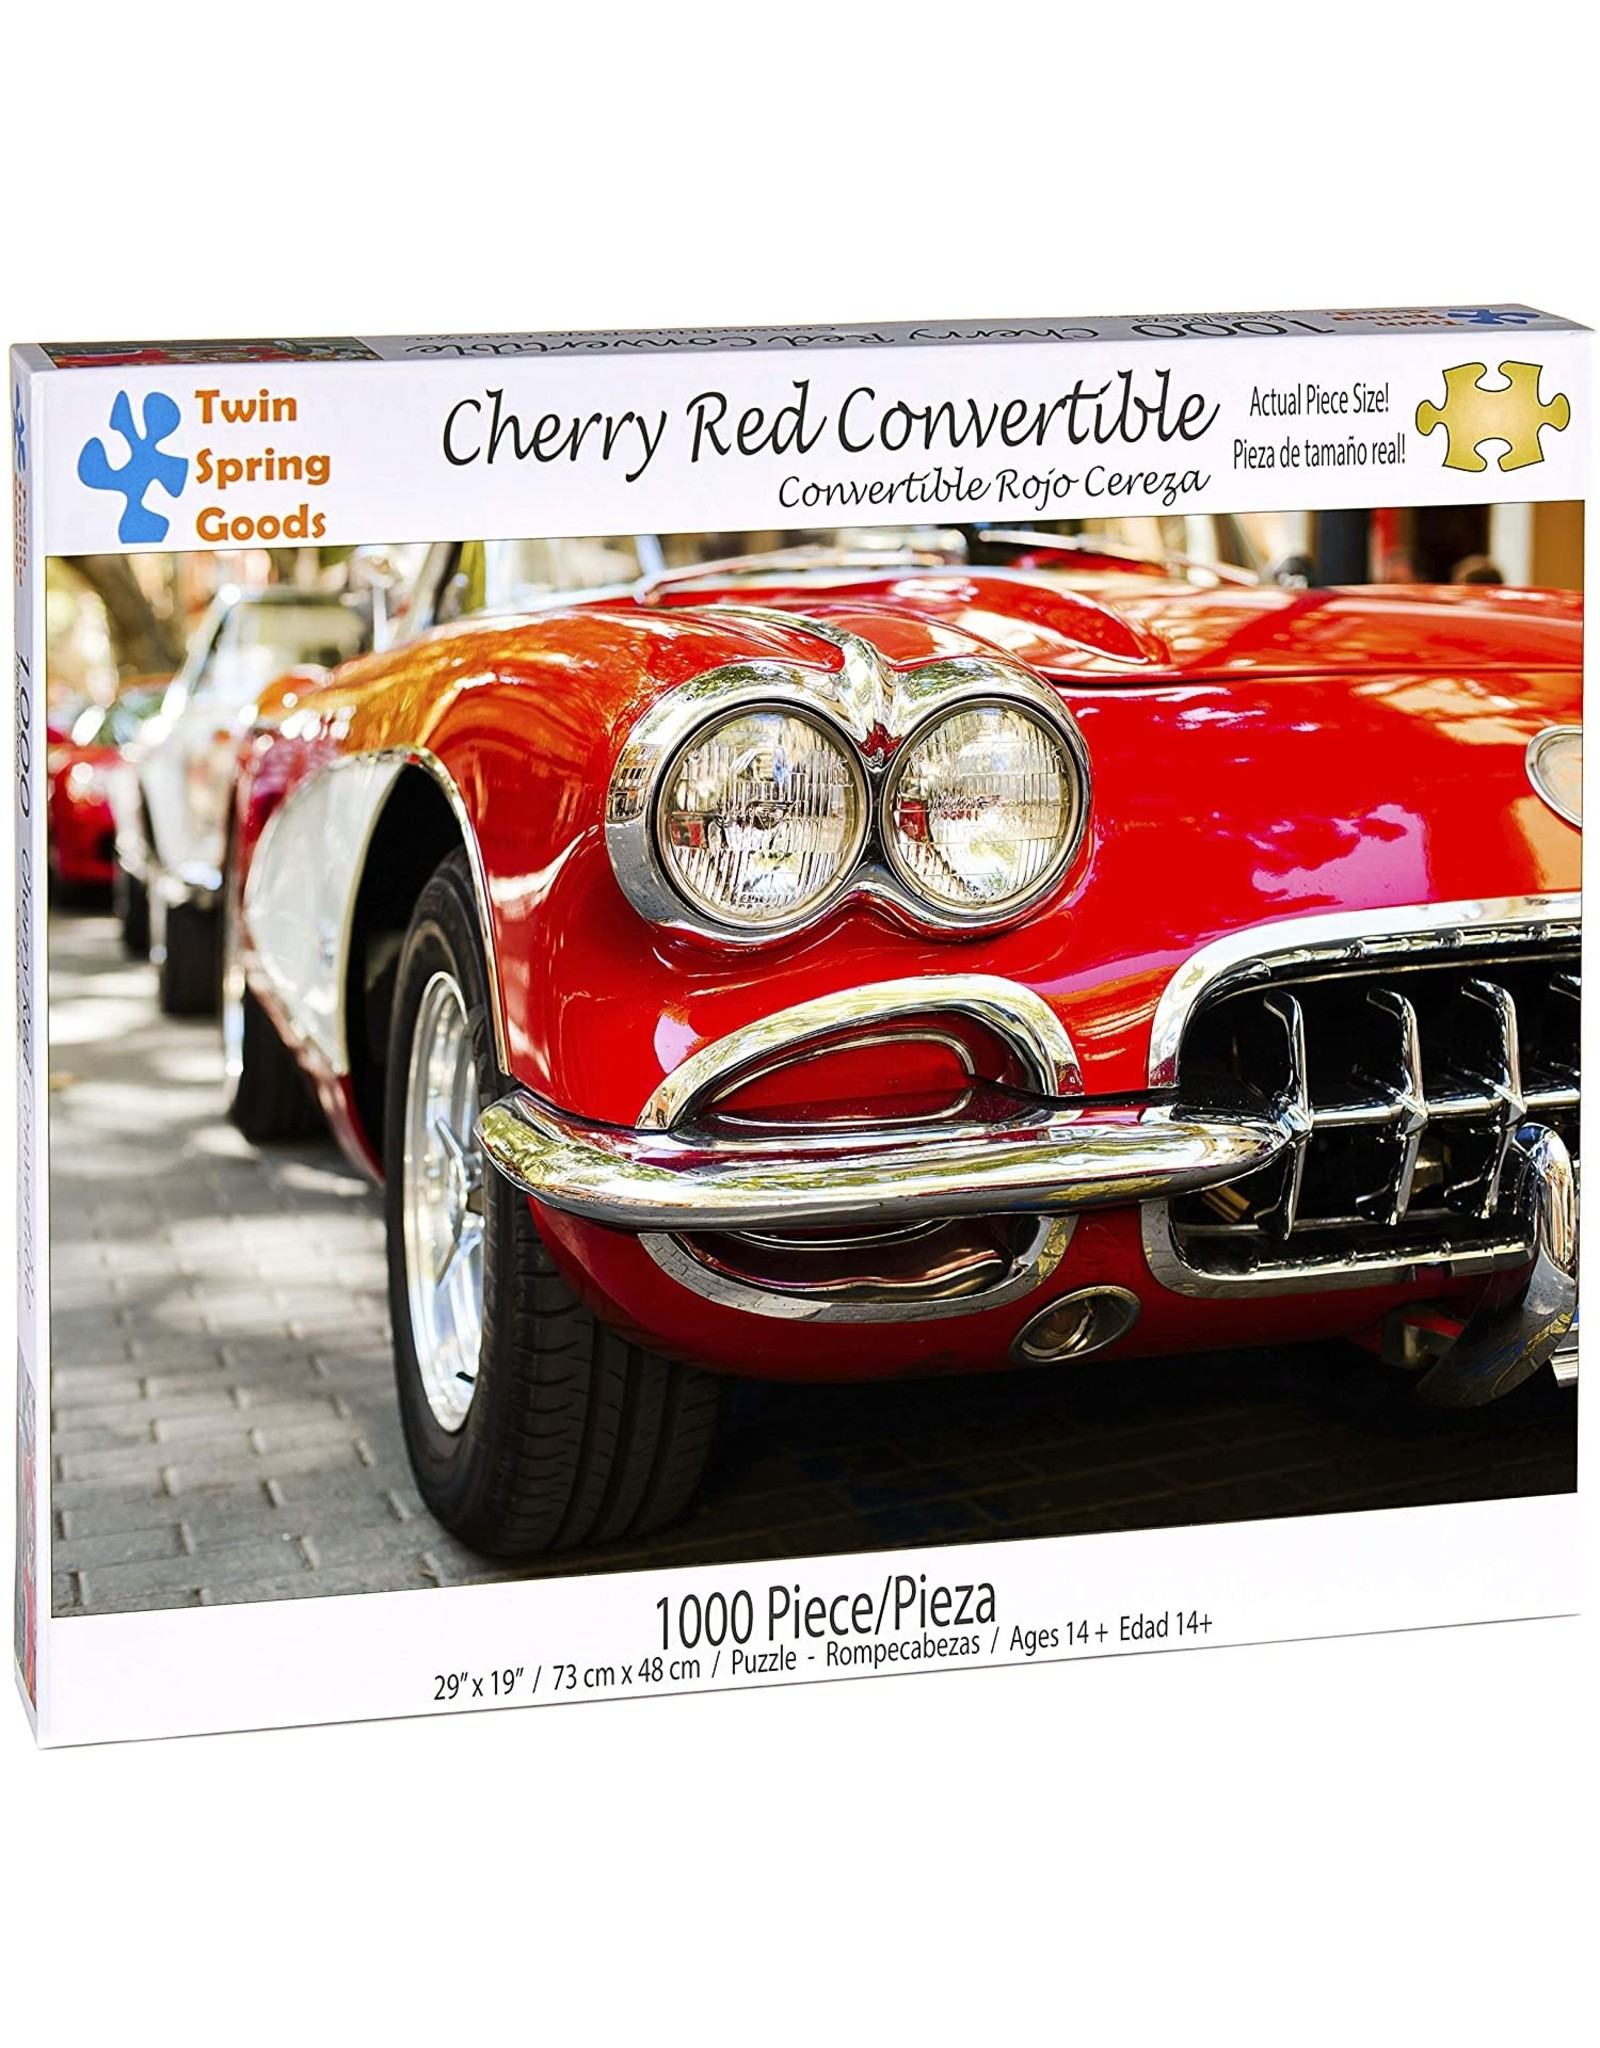 Cherry Red Convertible 1000 pc